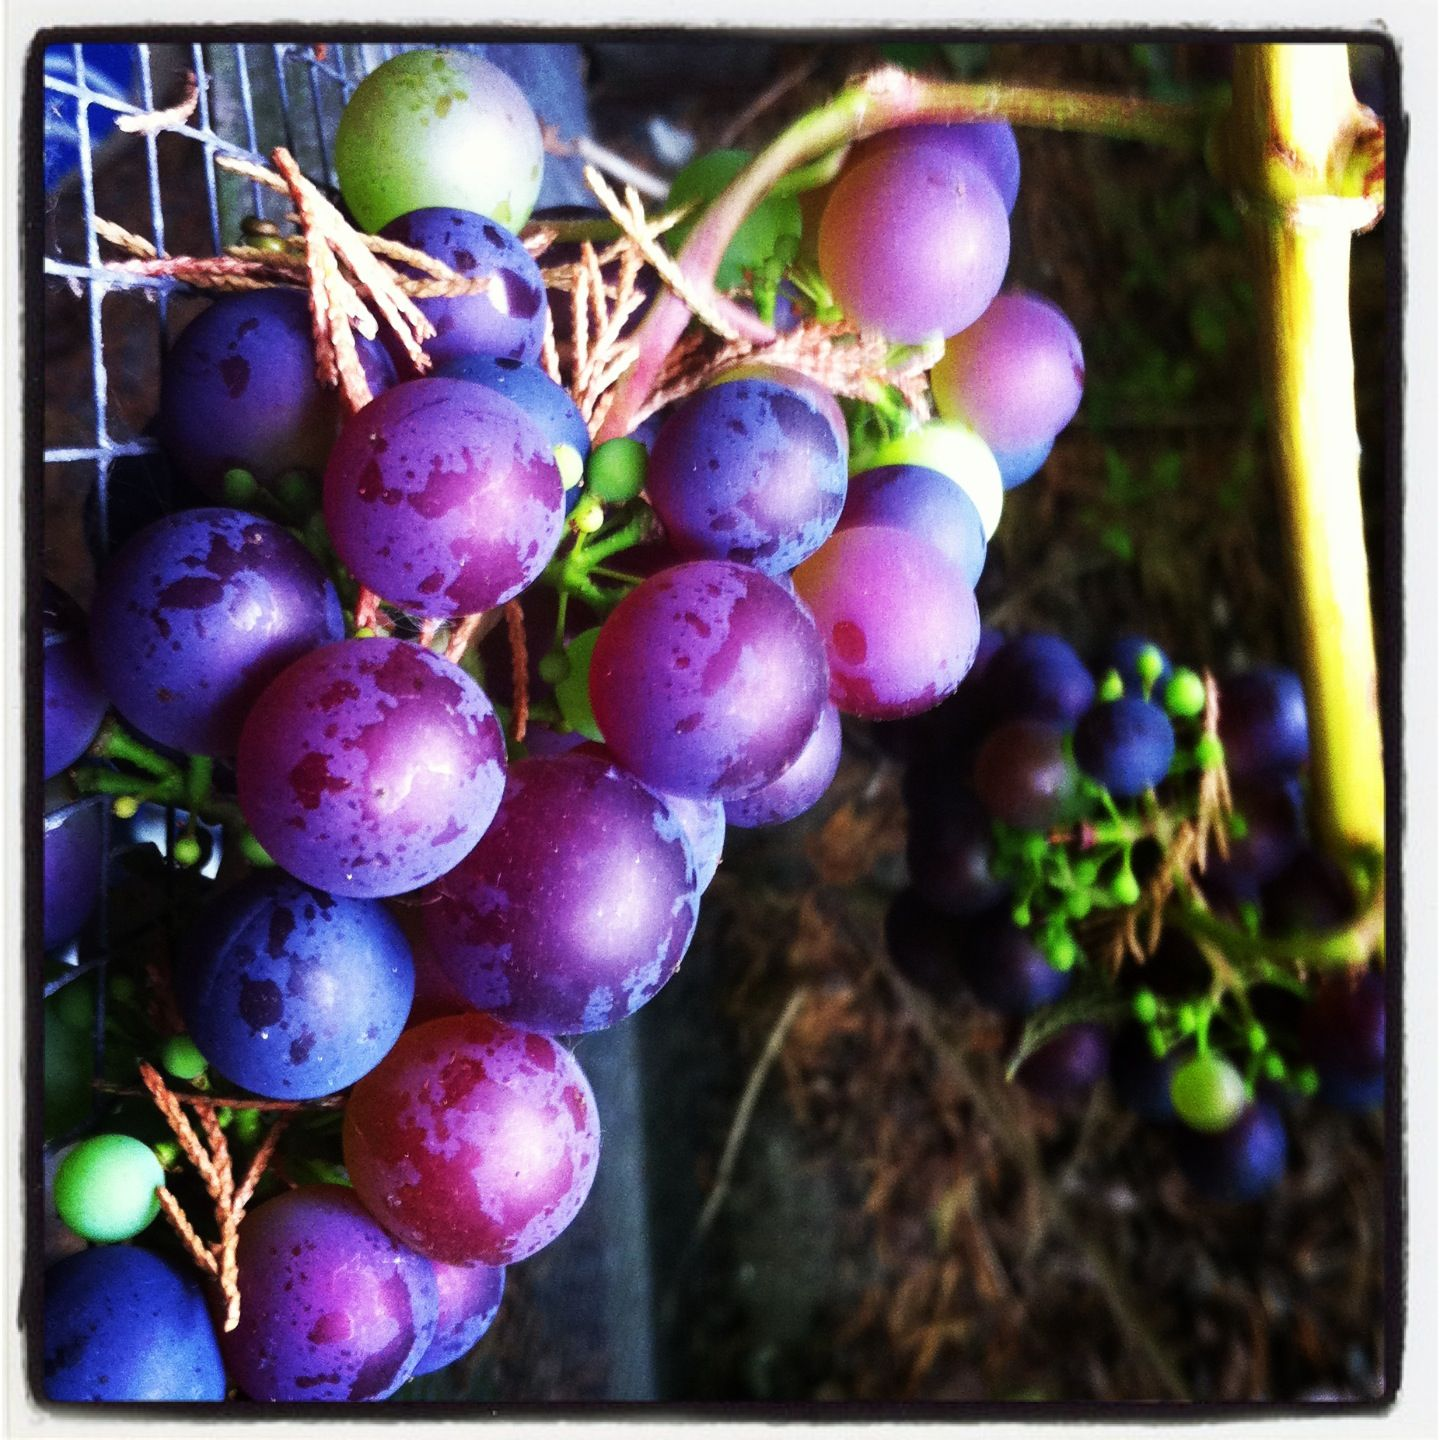 Grapes in our allotment garden